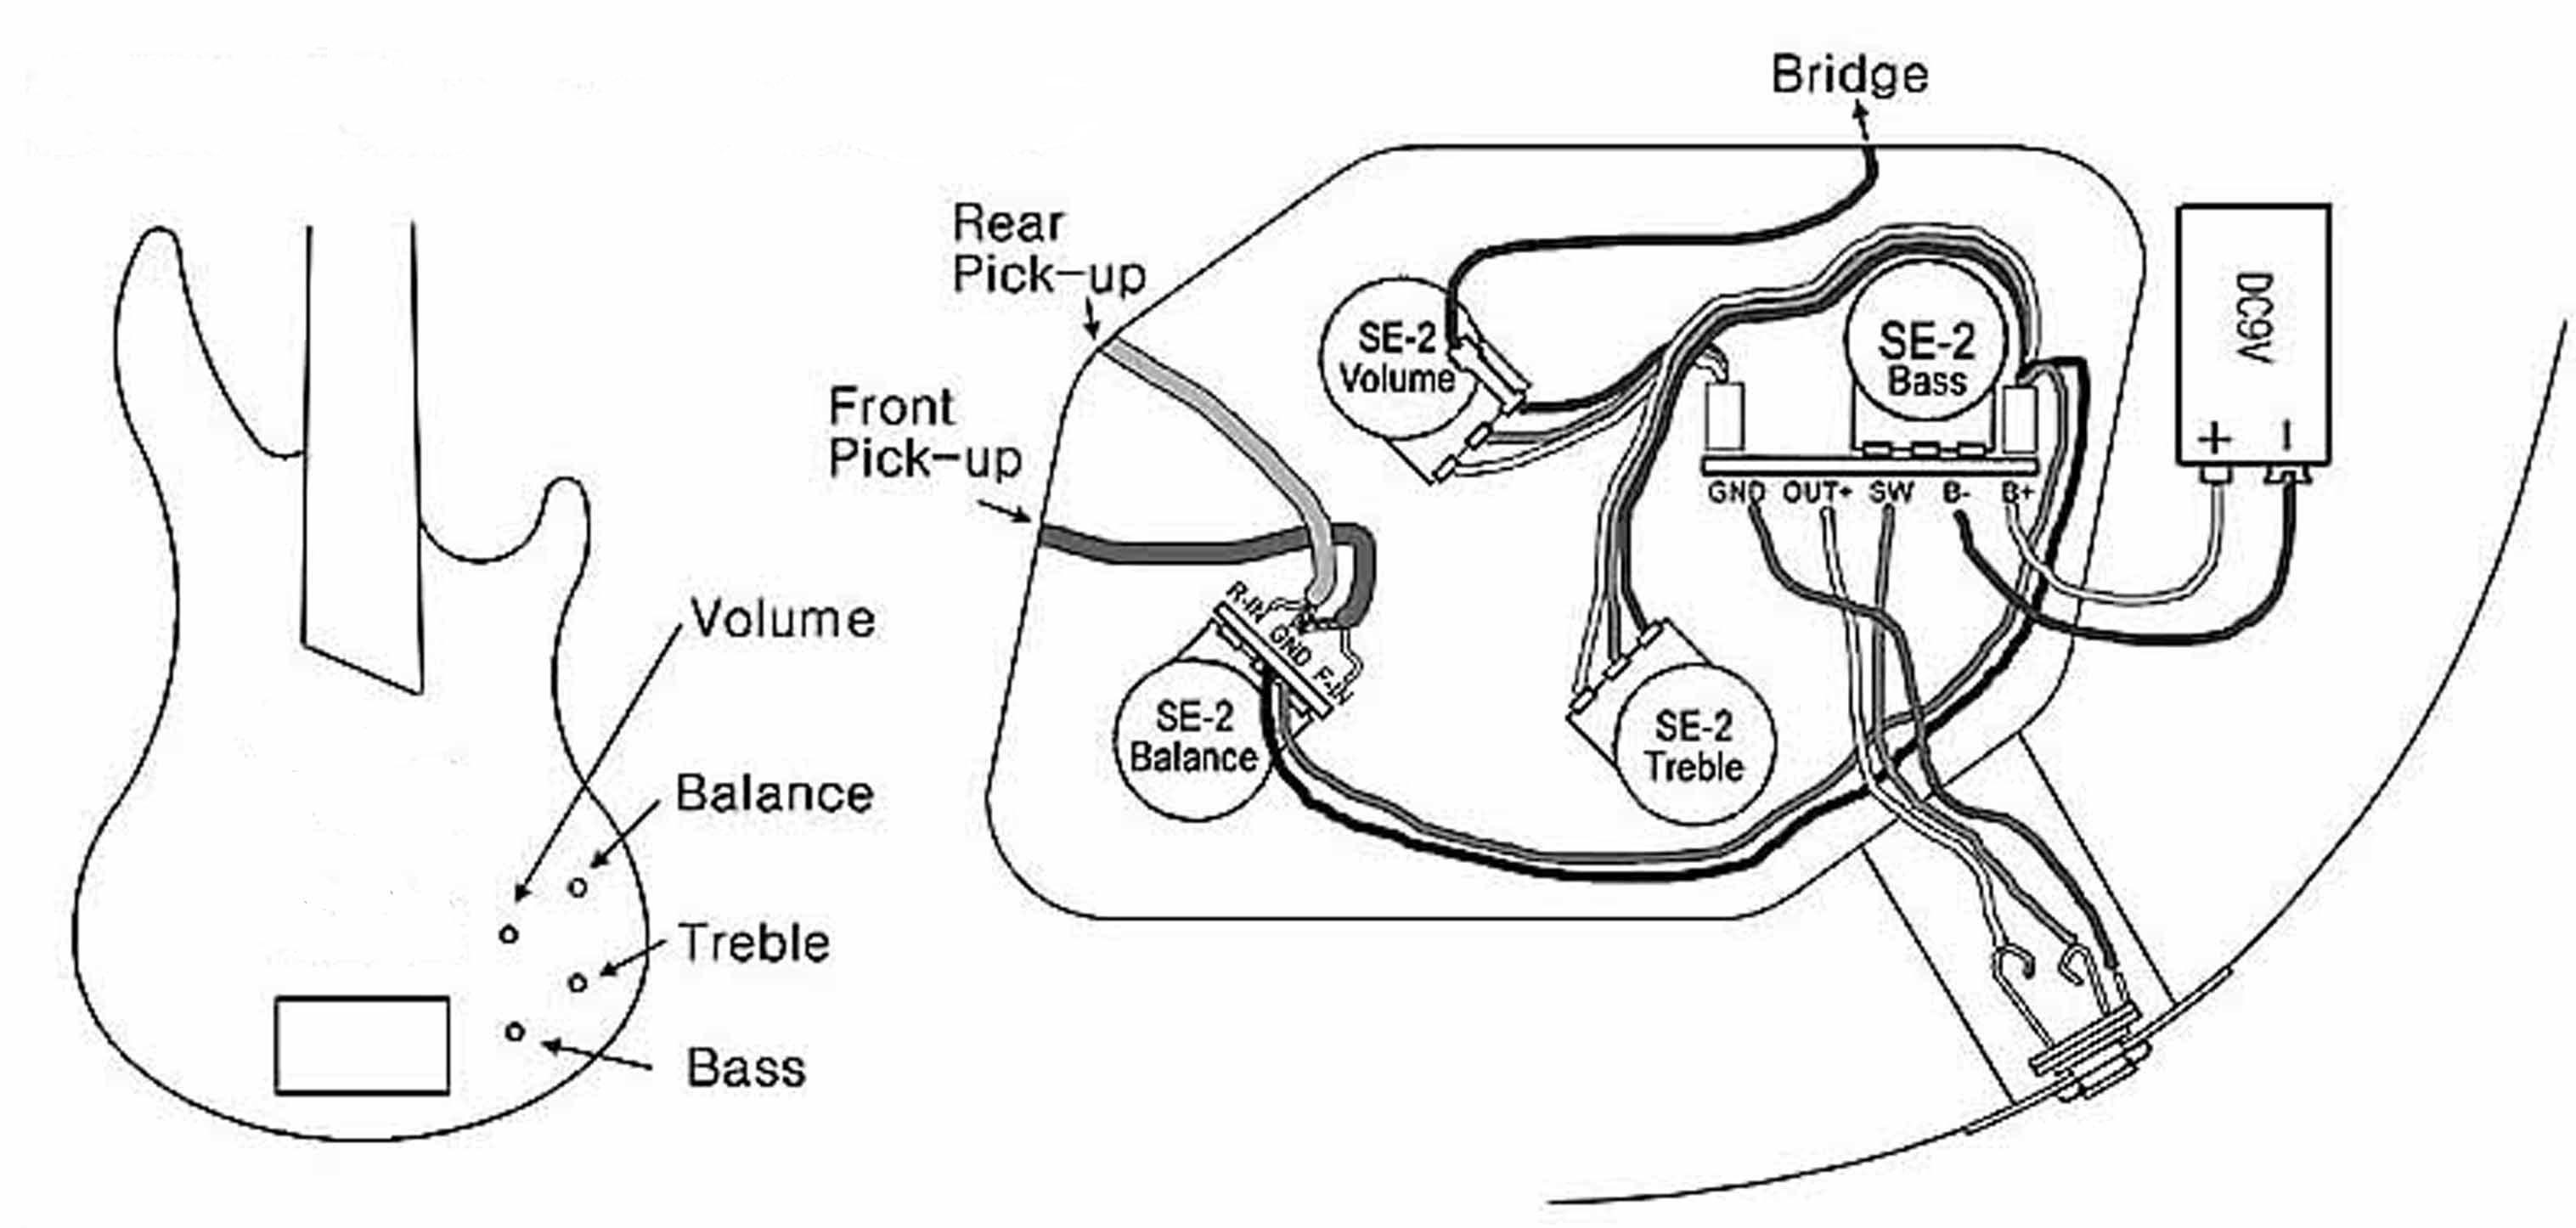 bass jack wiring diagram